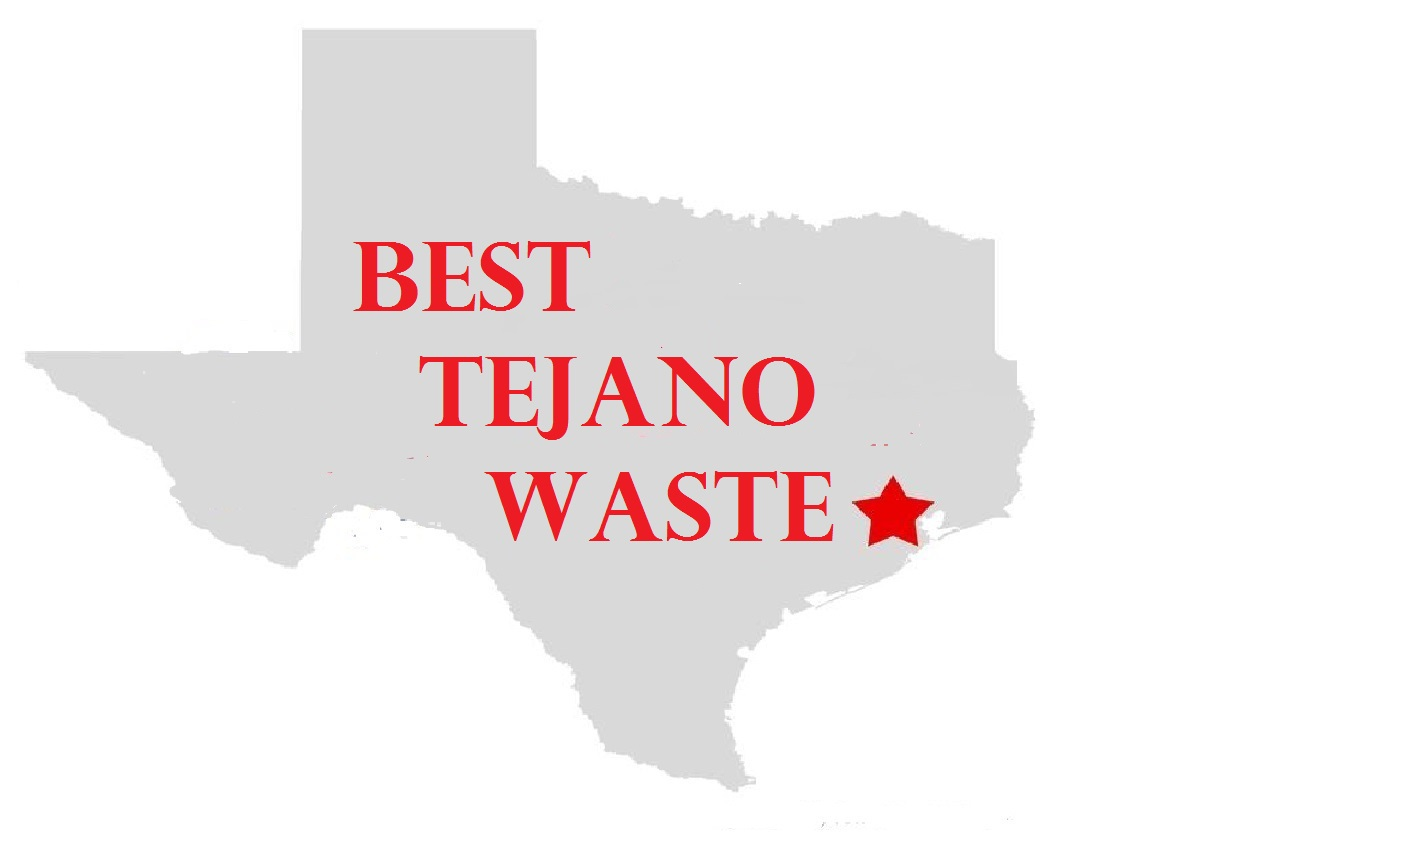 Best Tejano Waste